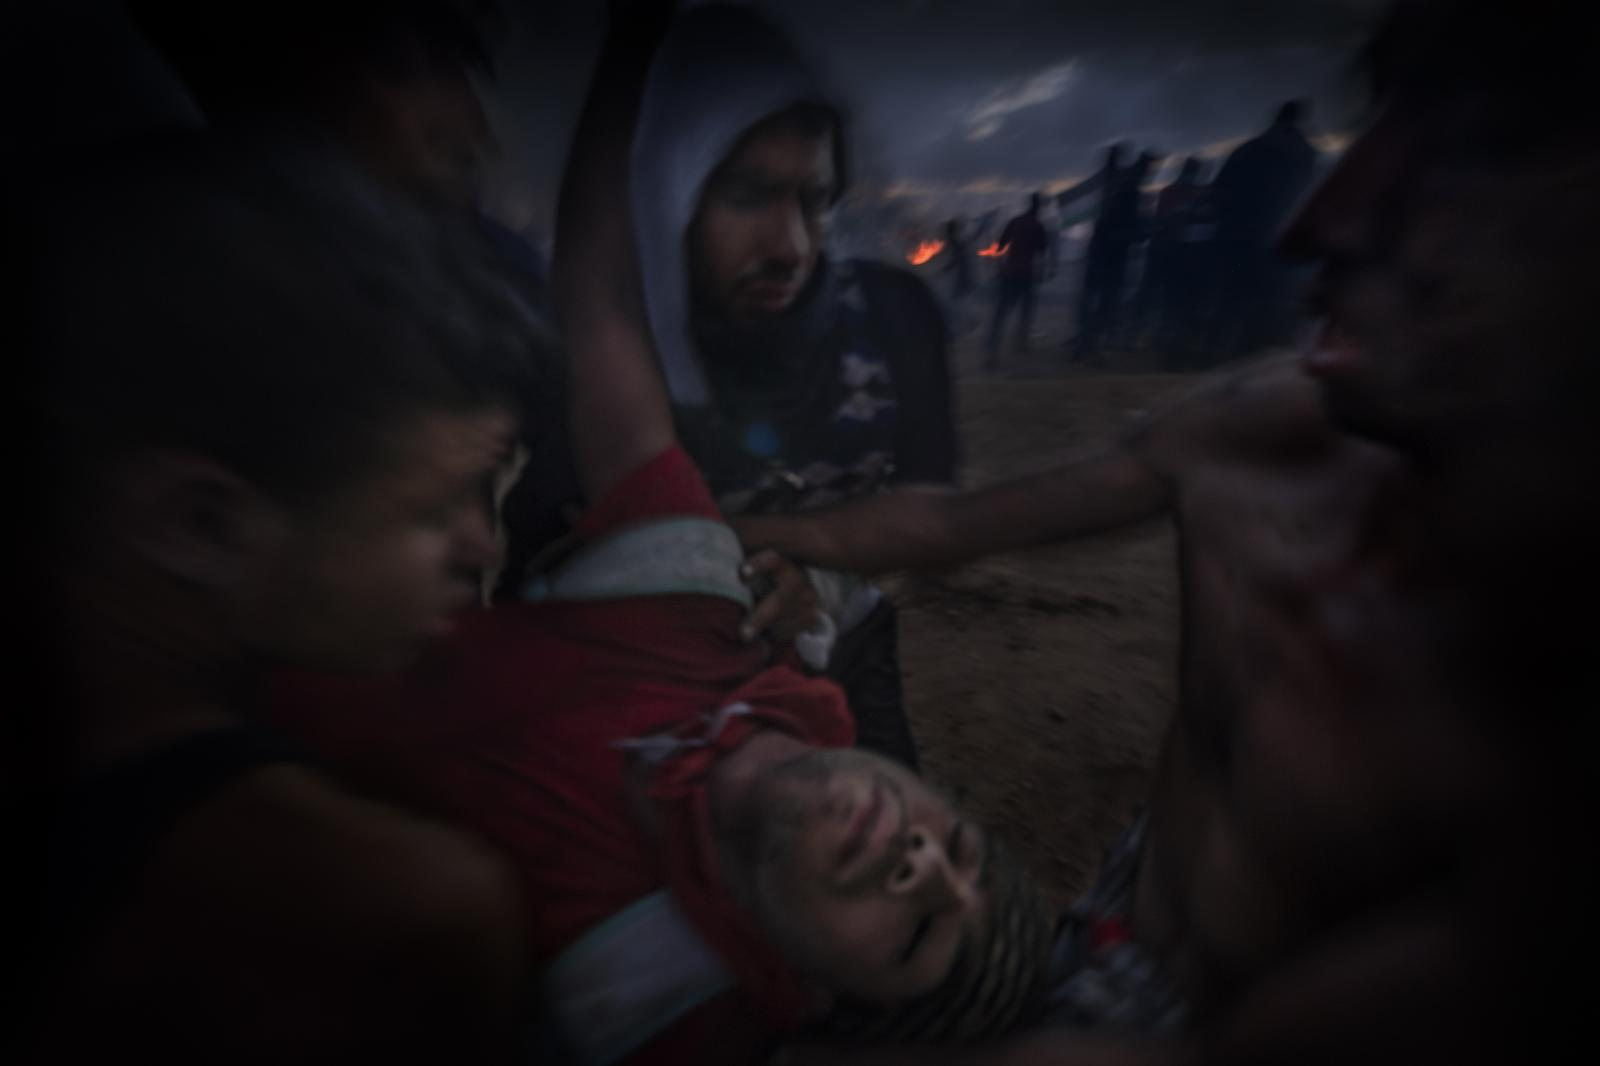 An unconscious Palestinian, wounded by a sniper on the front line of the fence, is quickly carried in his friends' arms. He died a short time later. (Gaza).